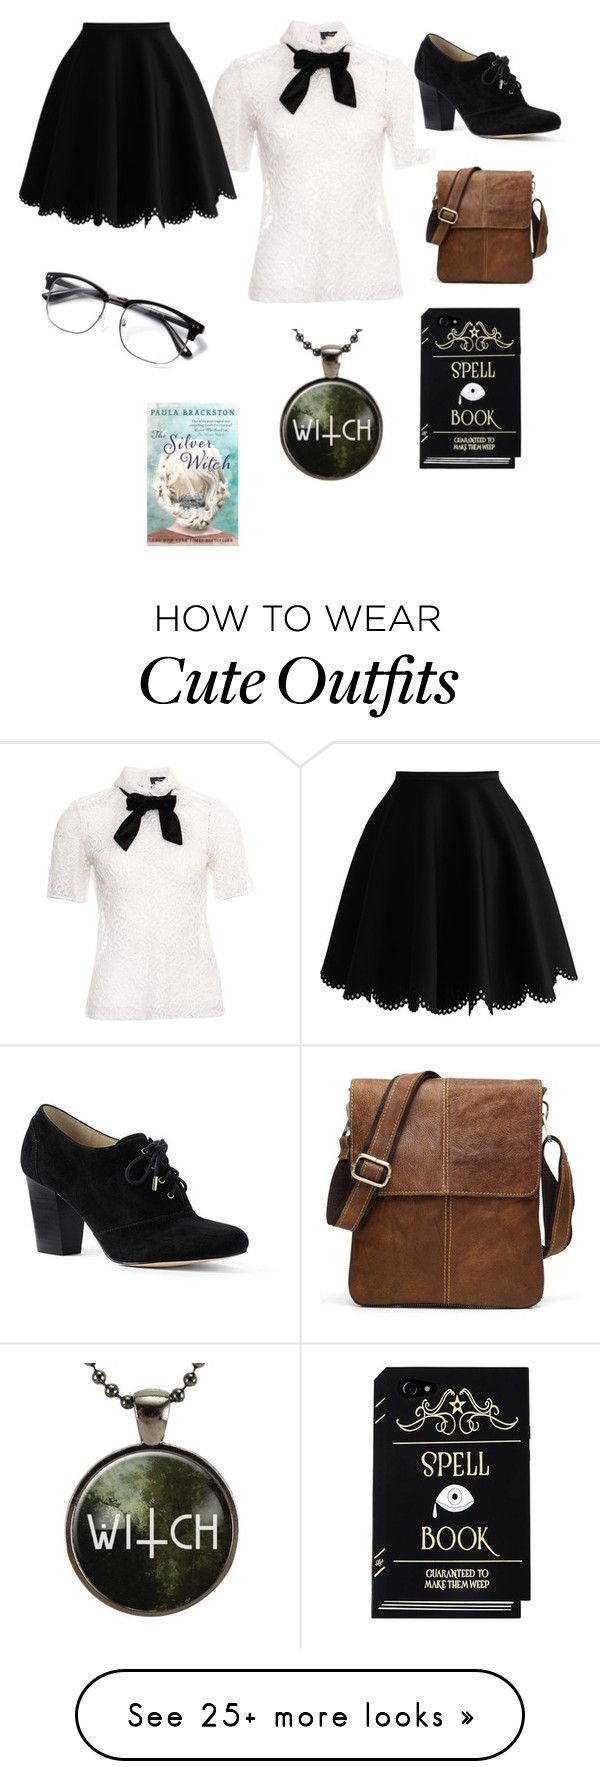 """Cute girly  outfit"" by ashleyallen1997 on Polyvore featuring The Kooples and Lands' End"